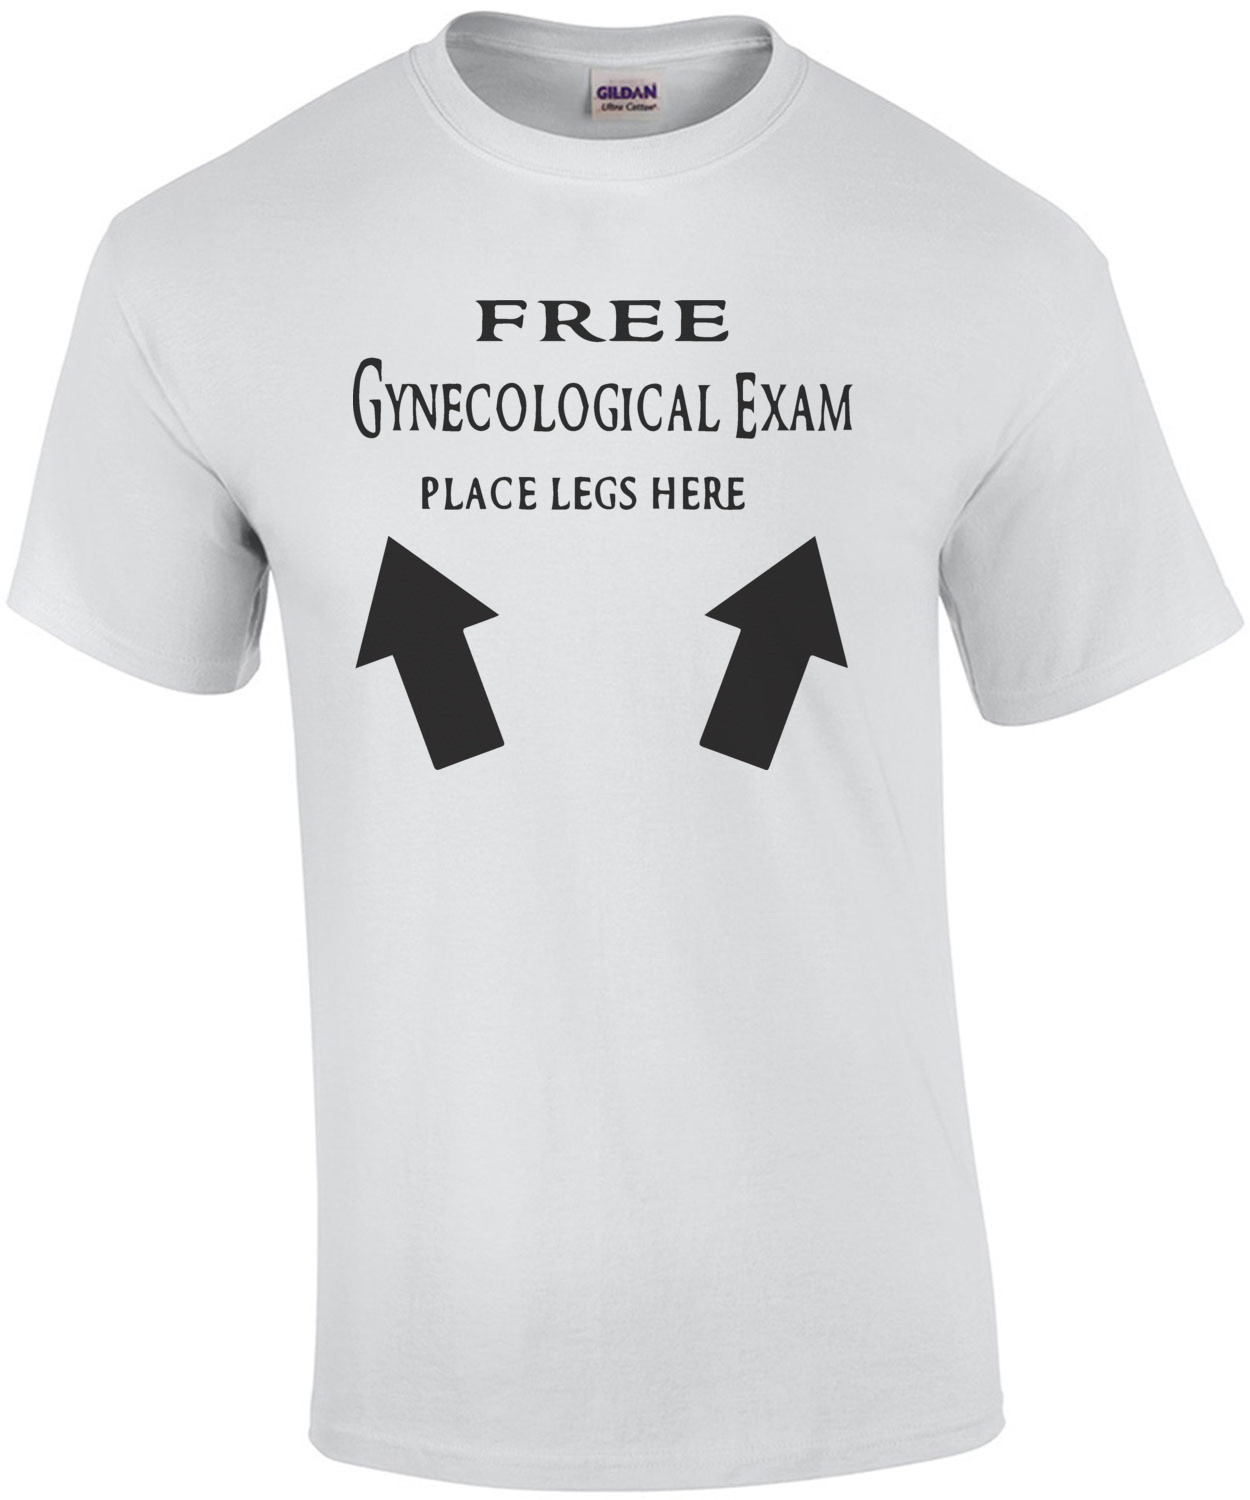 Free Gynecological Exam Place Legs Here - Funny T-Shirt